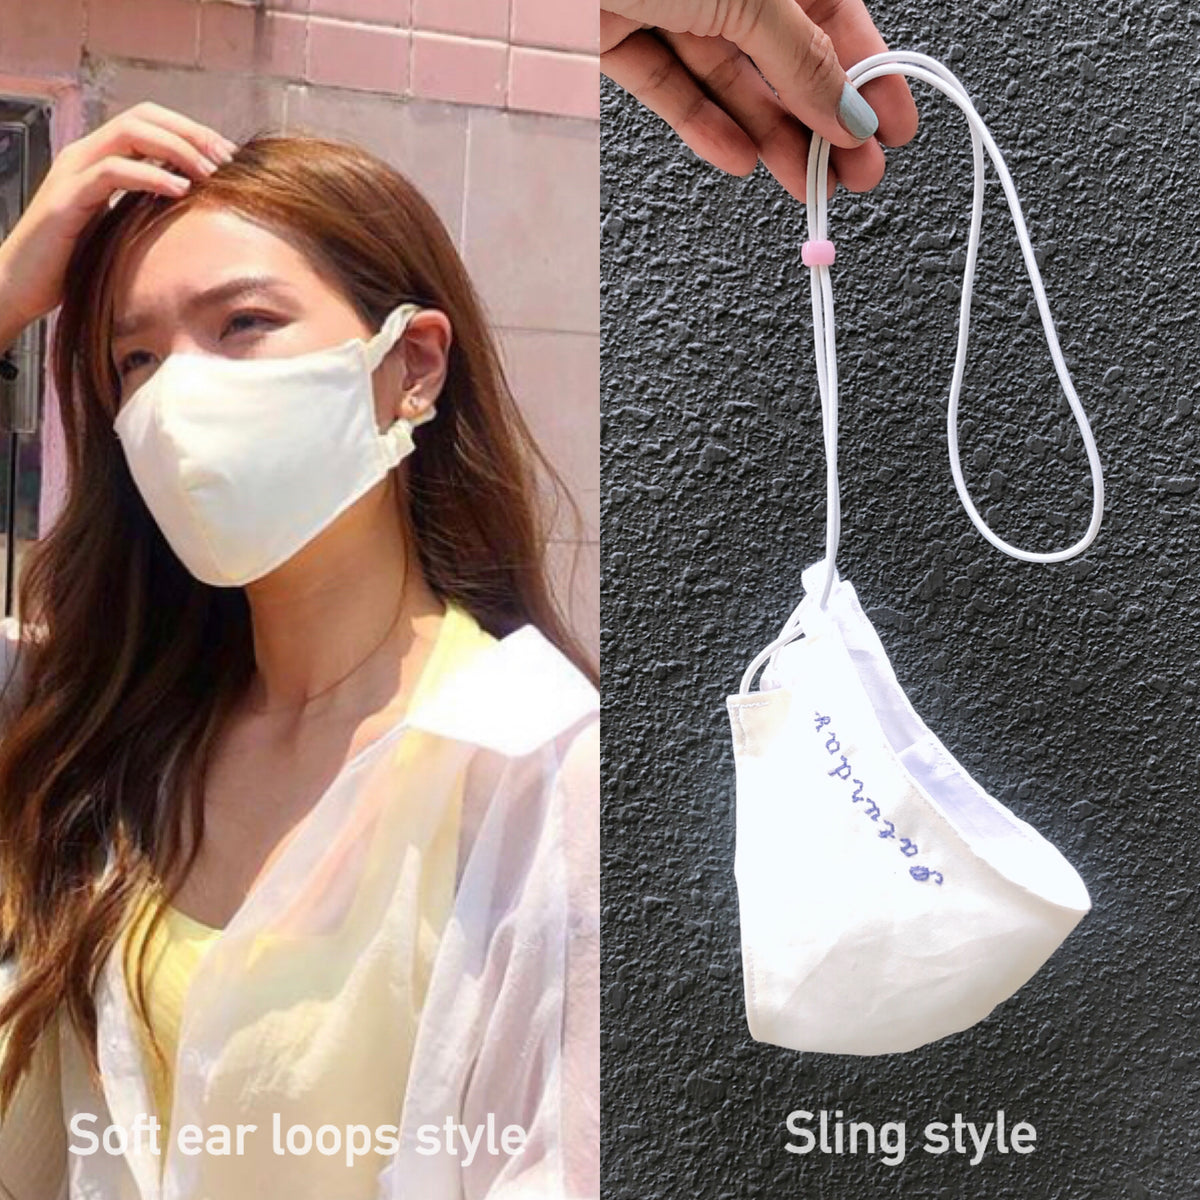 (Pre-orders)MEW 3D Face Mask With Sling or Soft Elastic Ear Loops - PINK VELVET Fabric